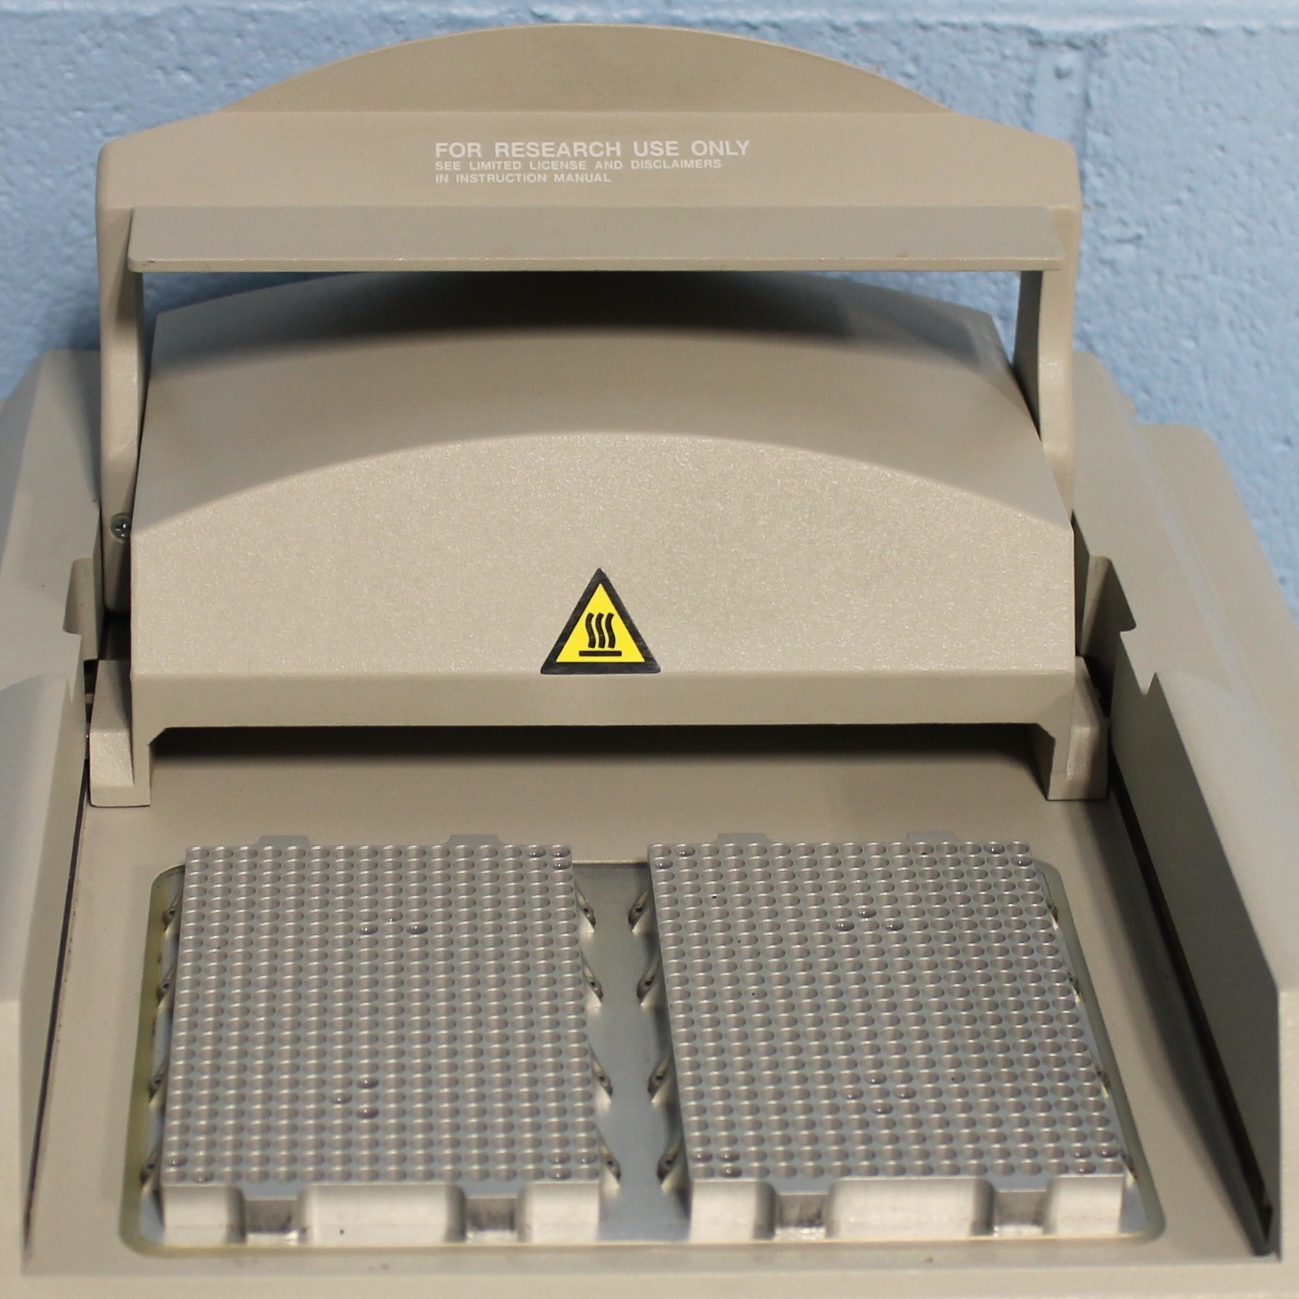 Applied Biosystems GeneAmp PCR System 9700 with Dual 384-Well Sample Block Module Image